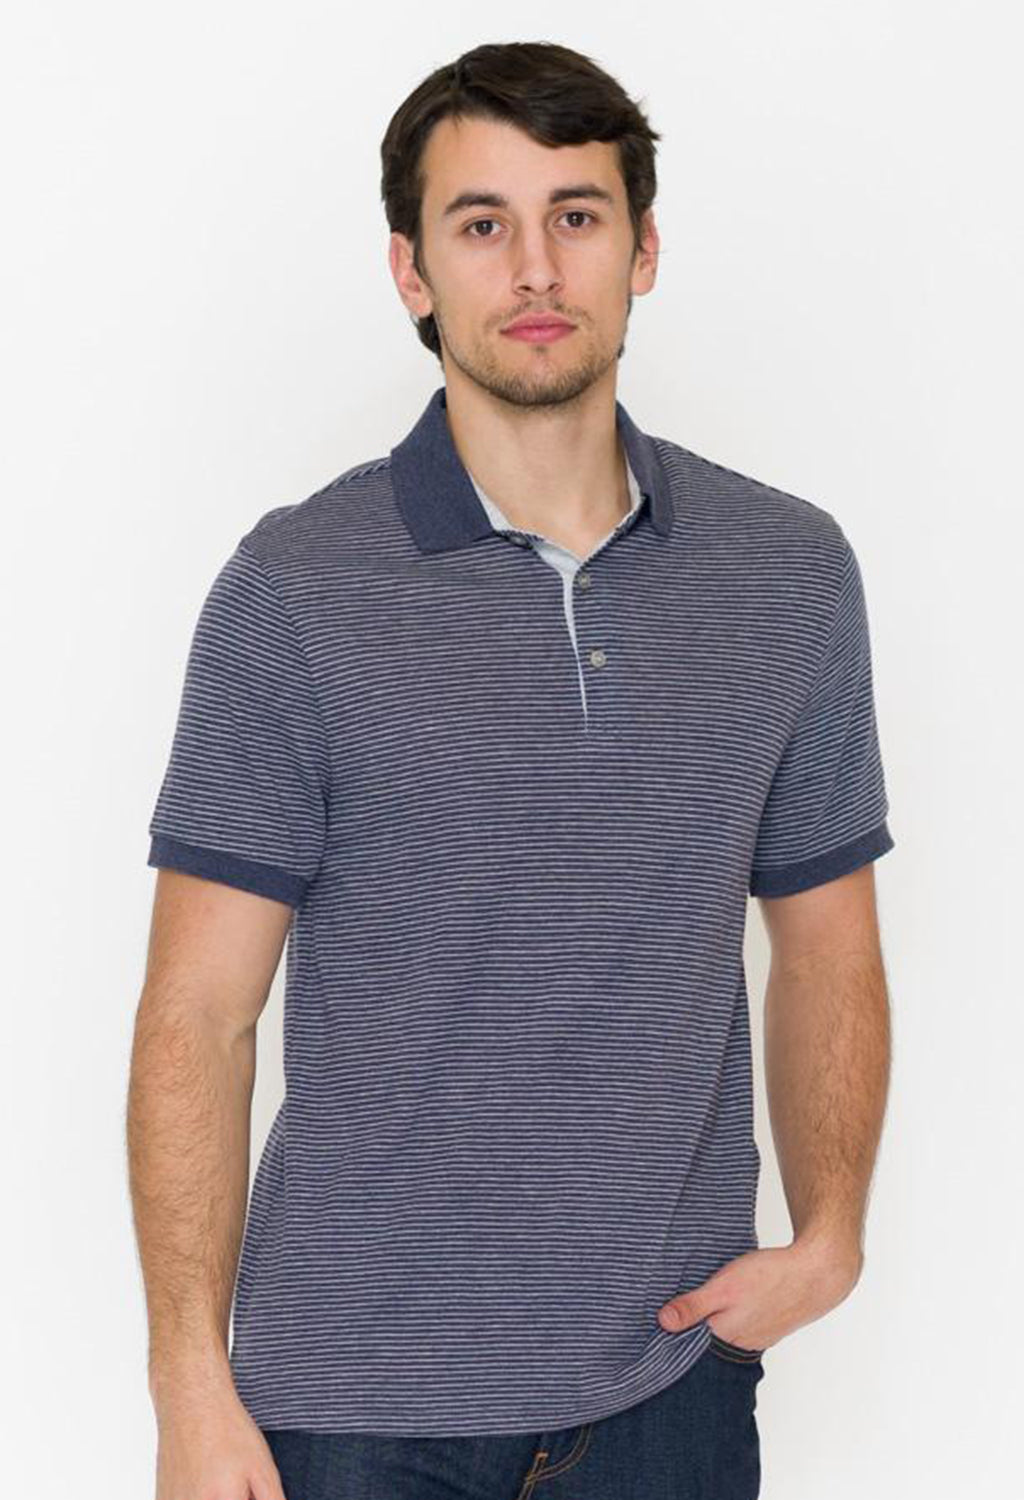 Alternative Eco Striped Polo - RUST & Co.